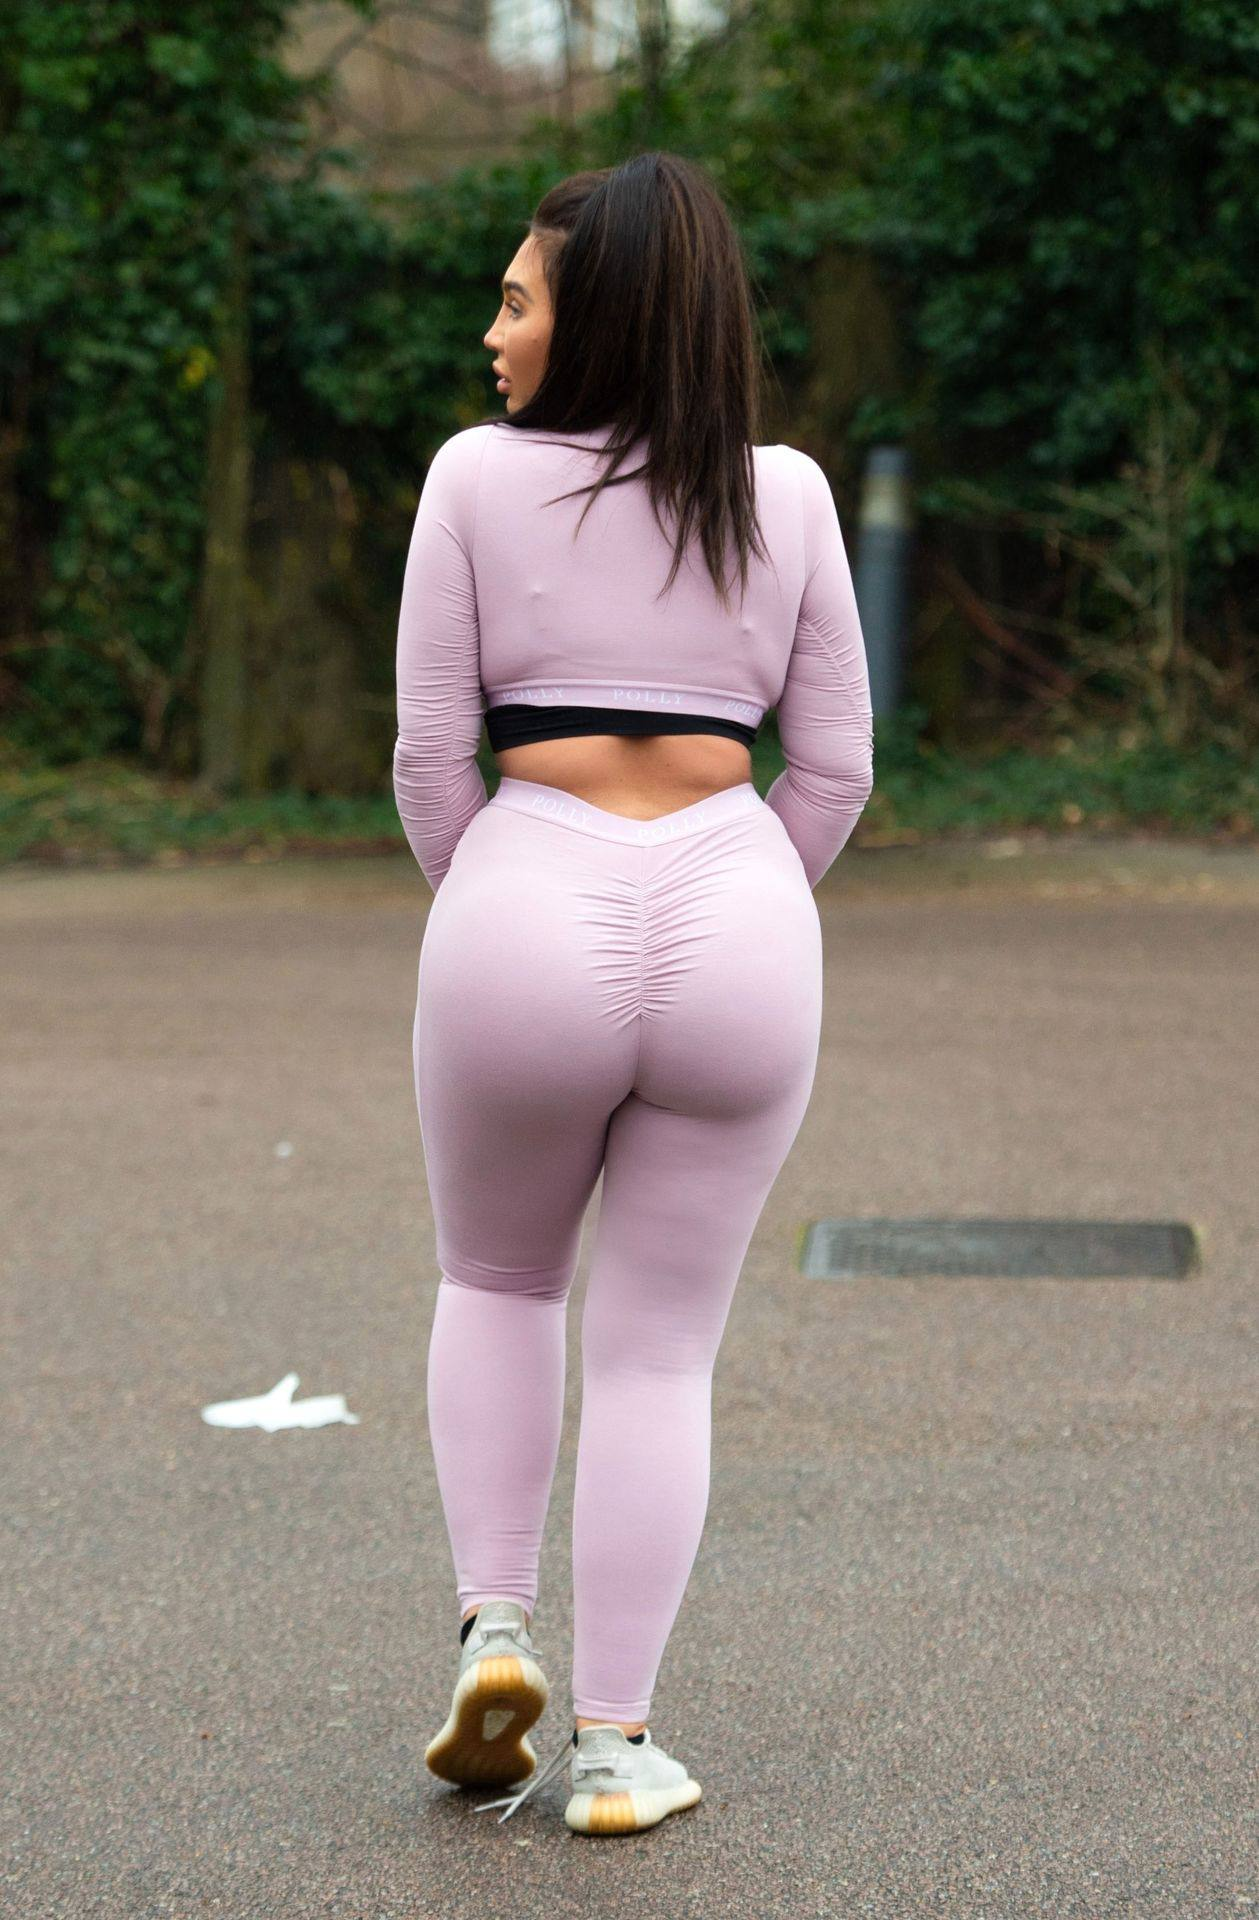 Lauren Goodger – Sexy Thick Body In Leggings And Revealing Top Out In Essex 0019